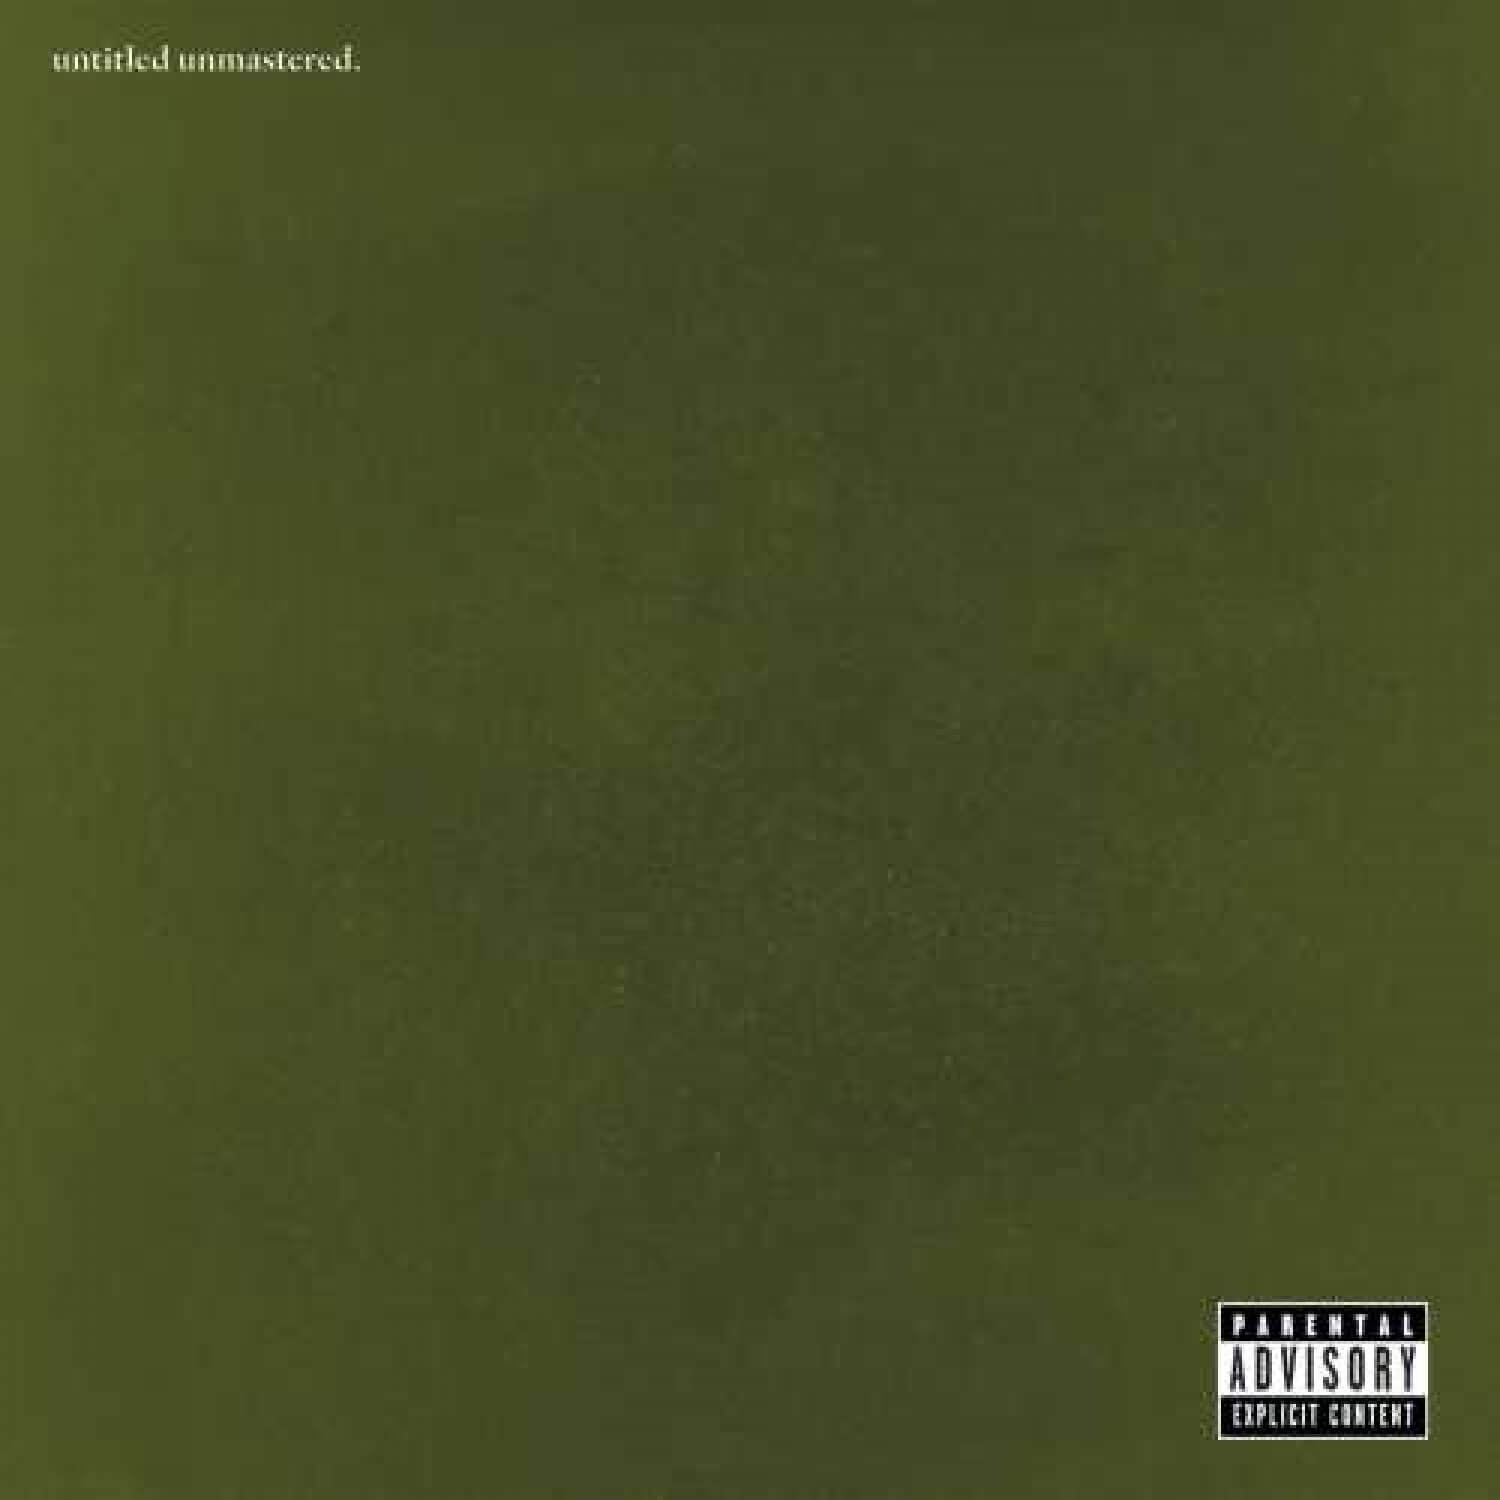 kendrick-lamar-untitled-unmastered-cd-092_1500